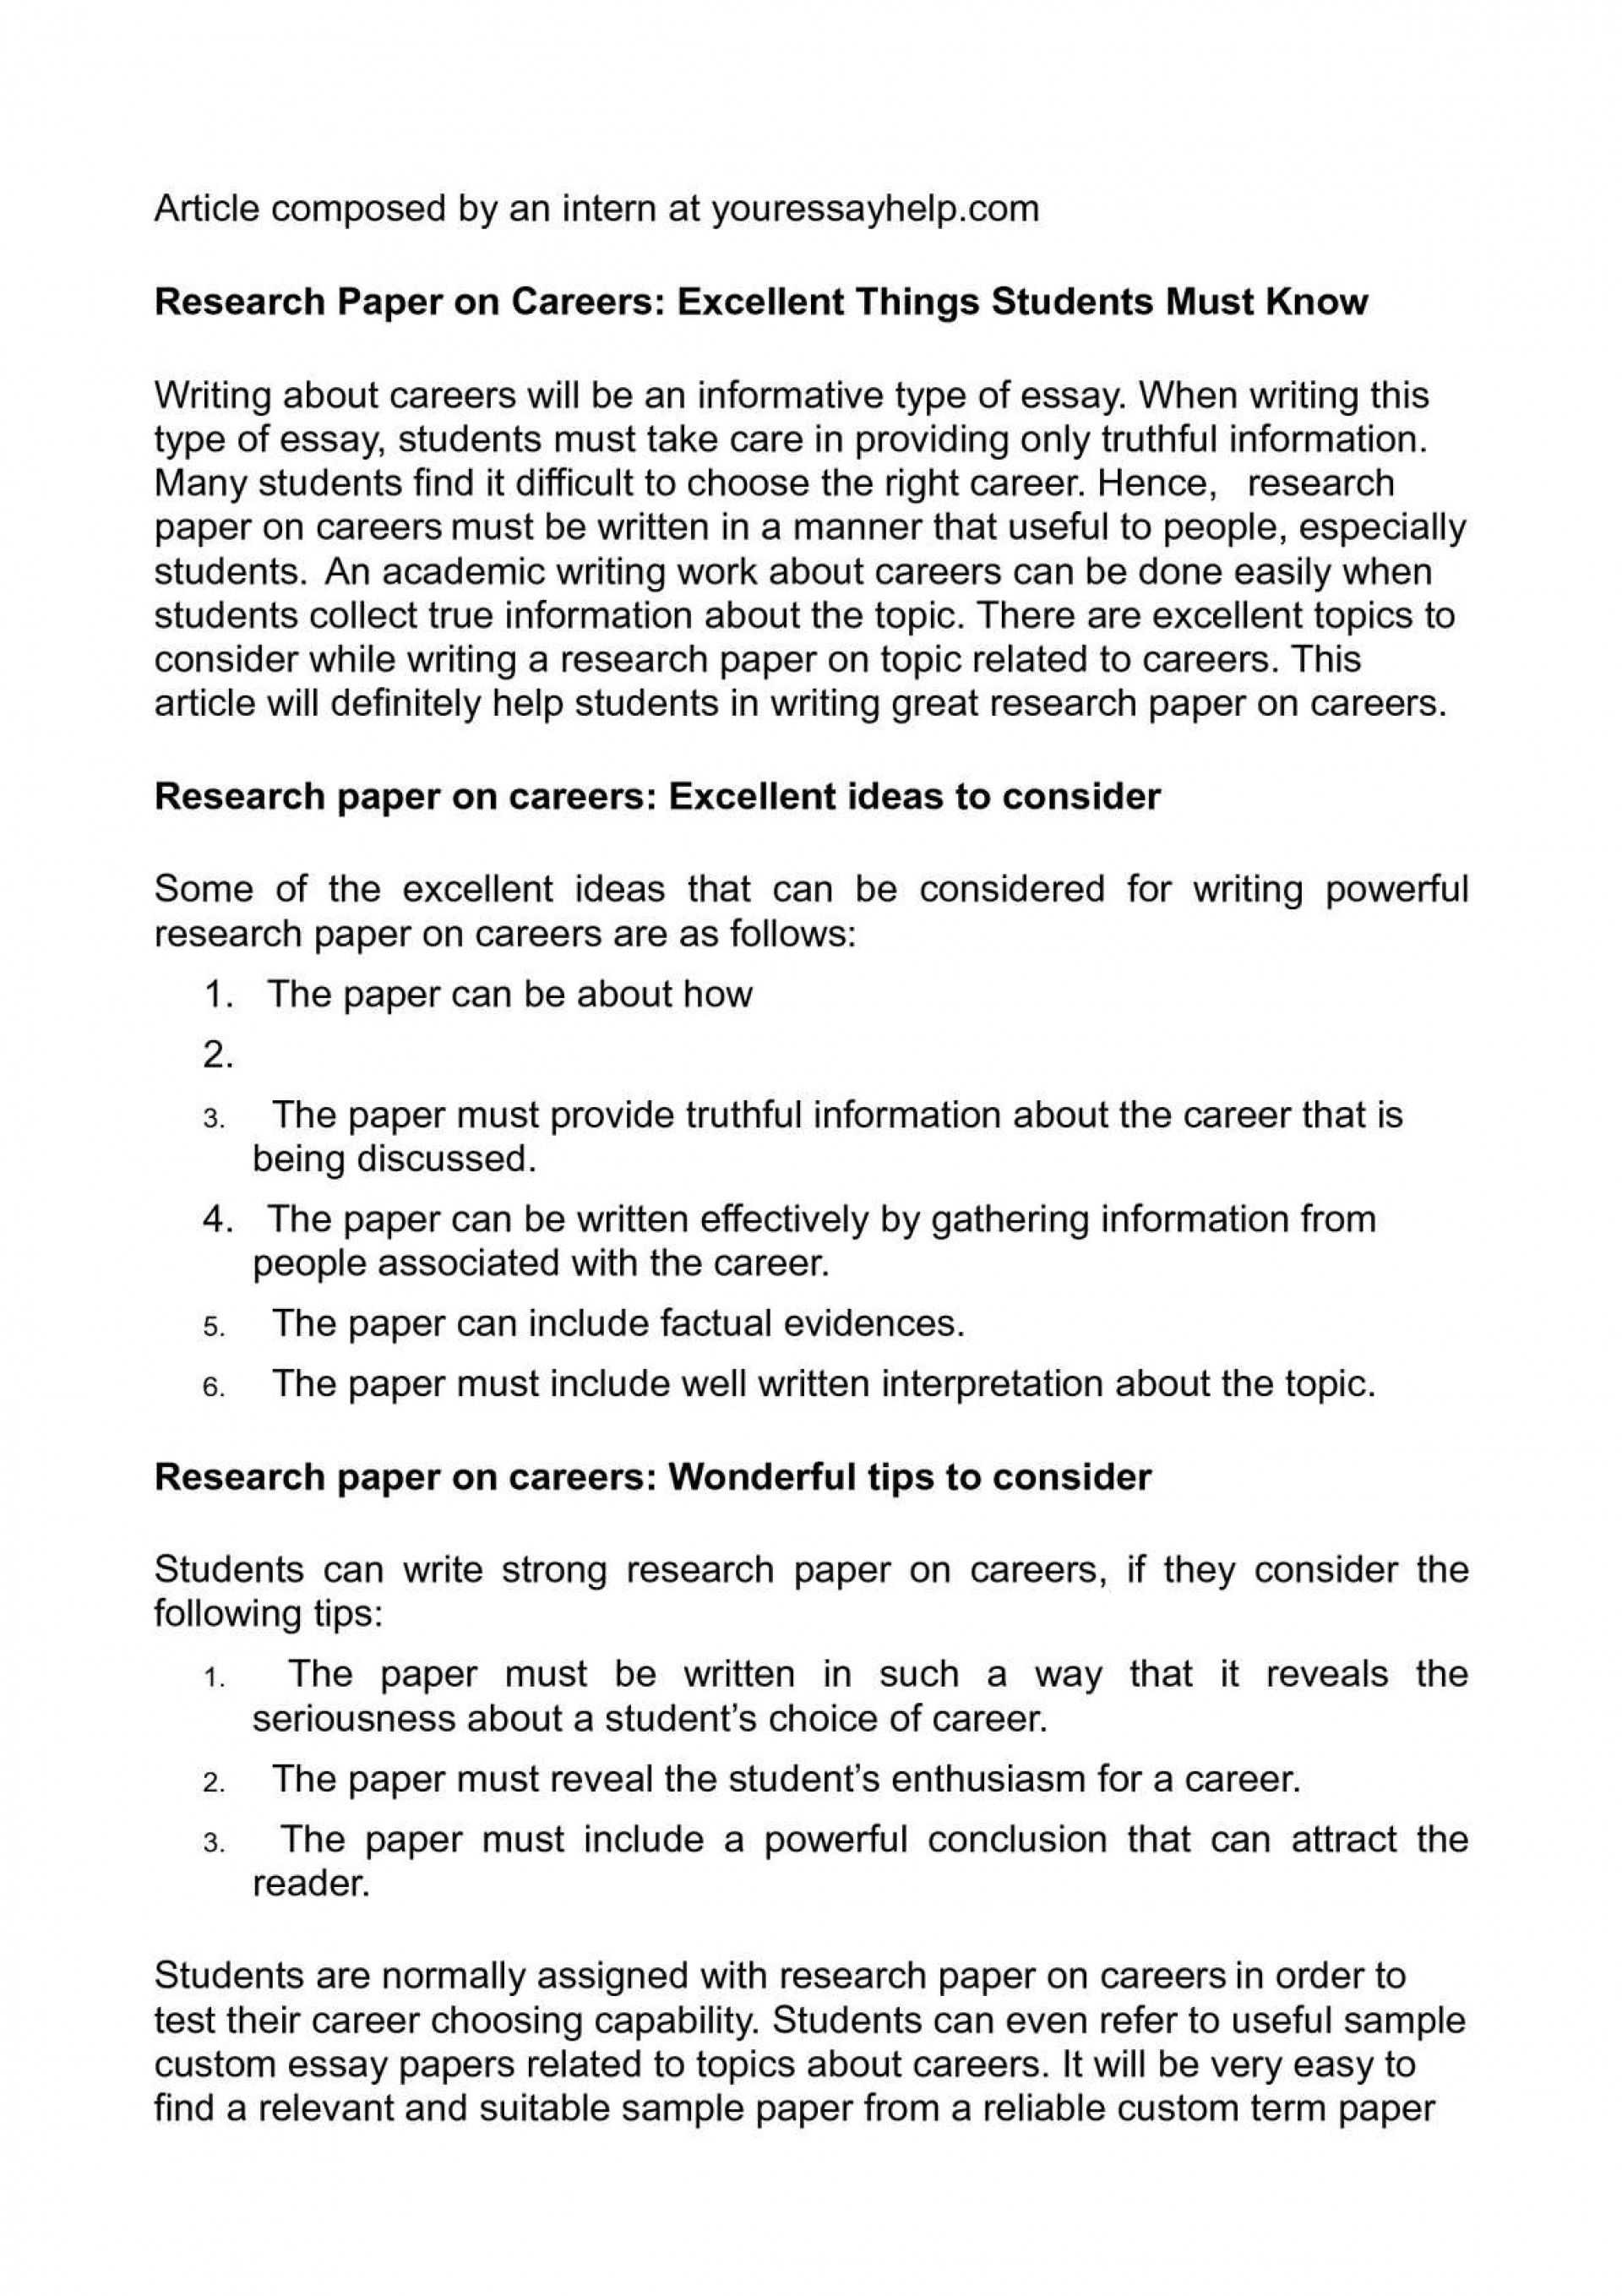 006 P1 Research Paper On Breathtaking Careers Thesis Statement For A Topics 1920